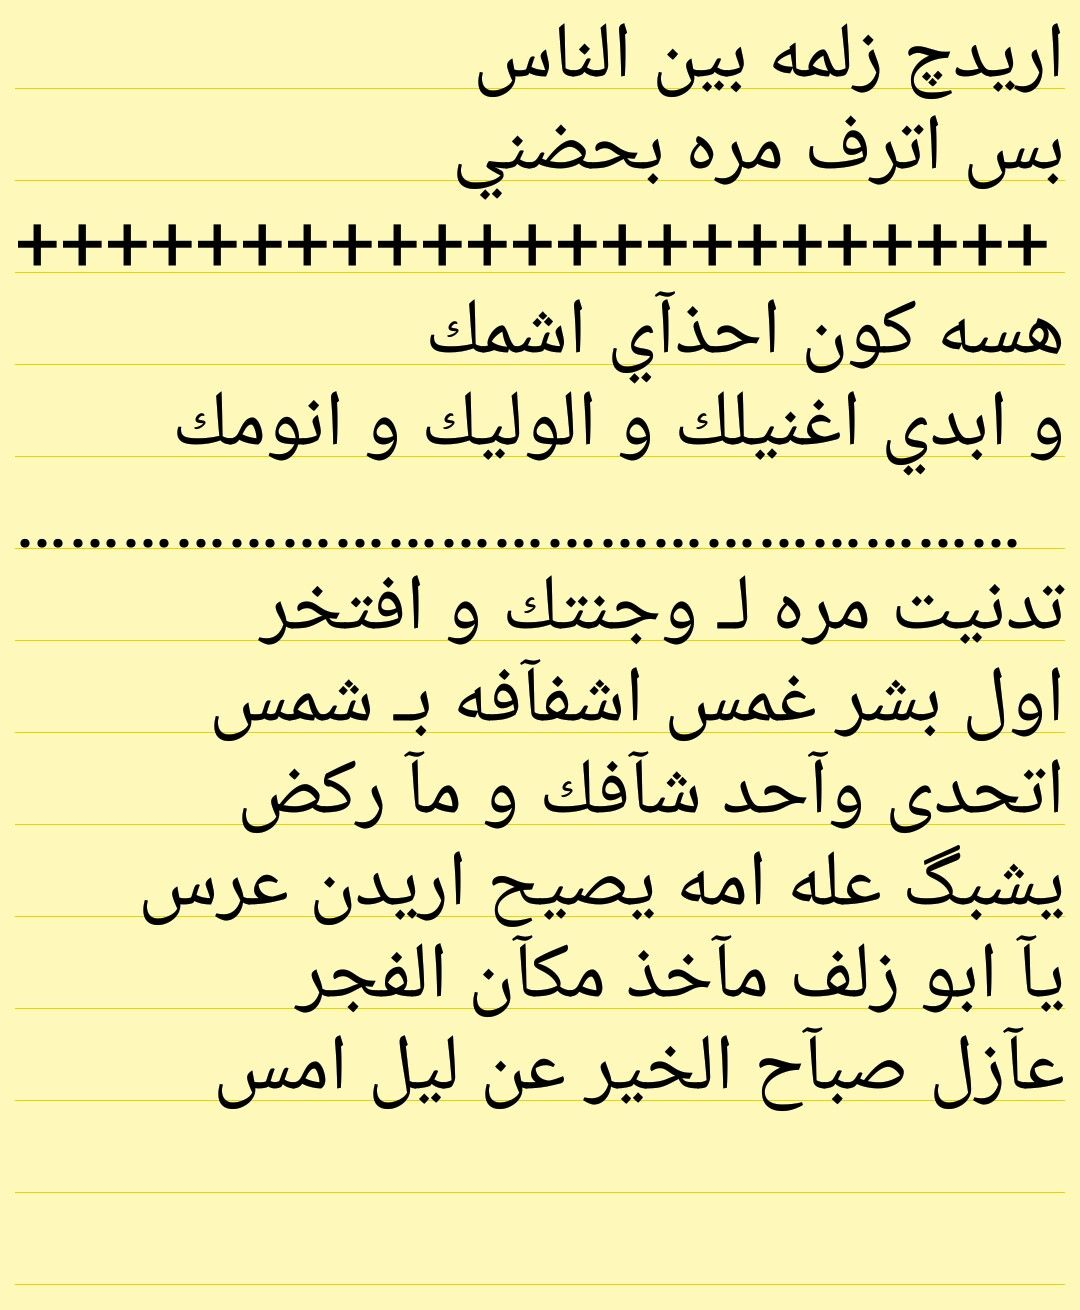 Pin By Jabbar Hasan On شعر شعبي عراقي Words Quotes Love Quotes